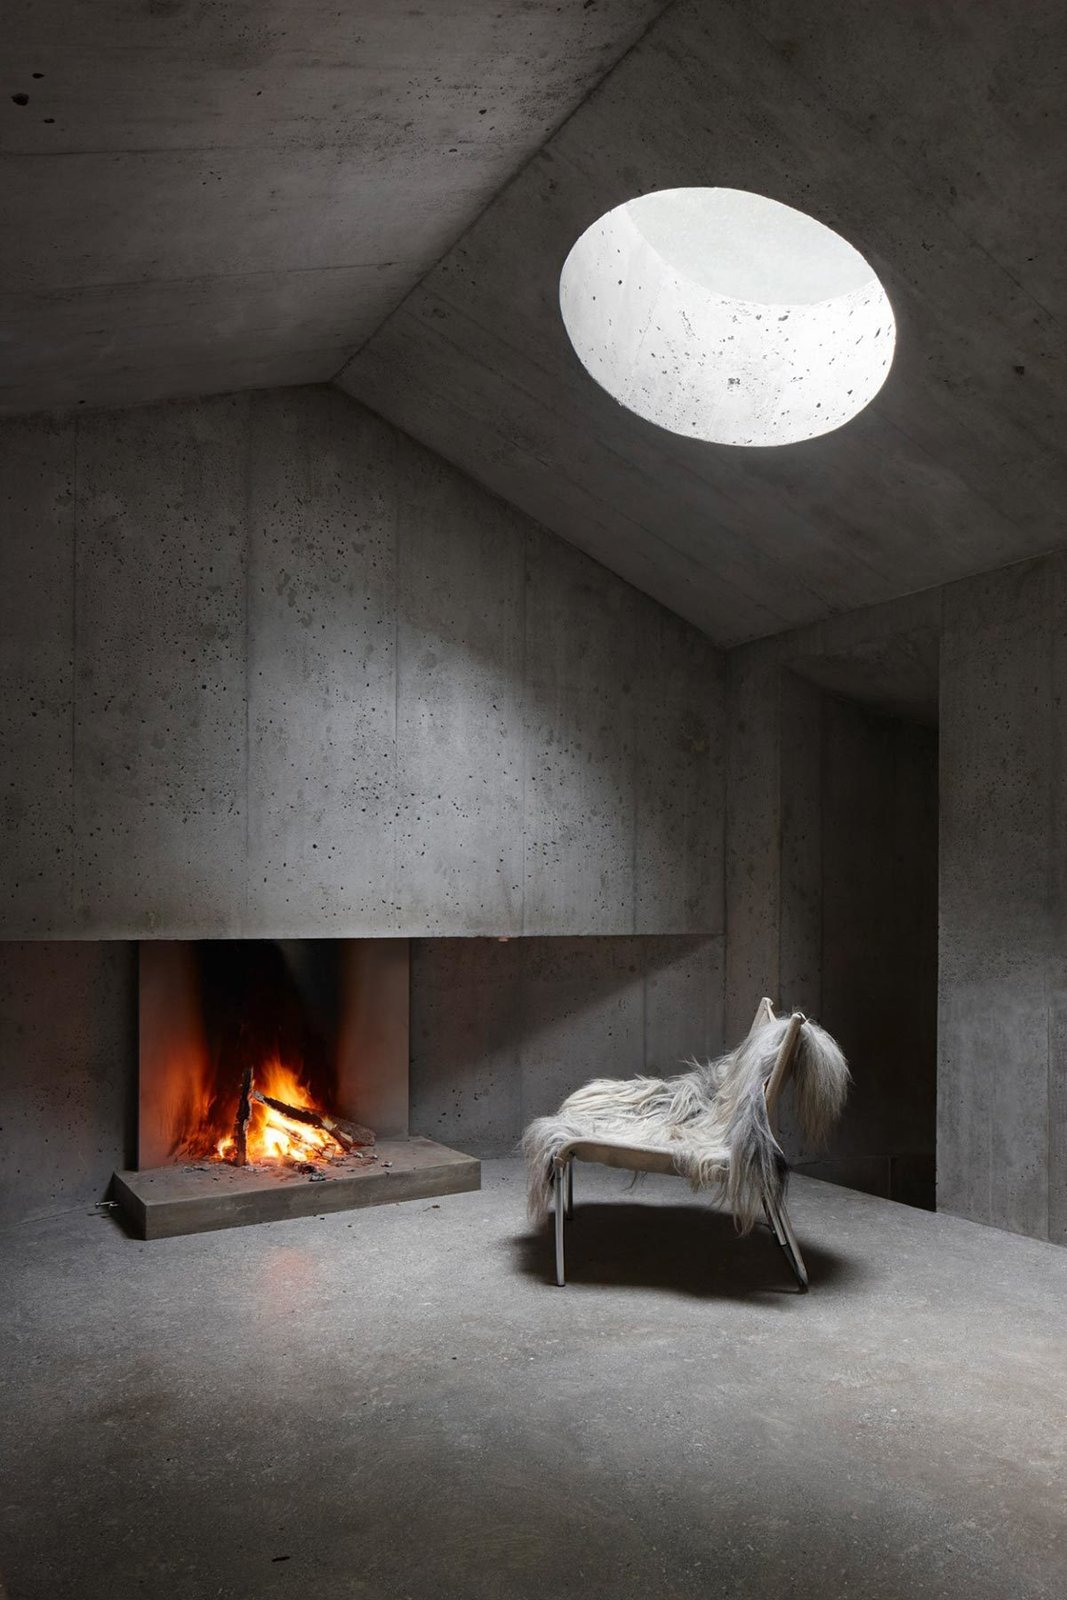 Concrete Shelter in the Image of a Cabin  Brutal Beauty by Gessato